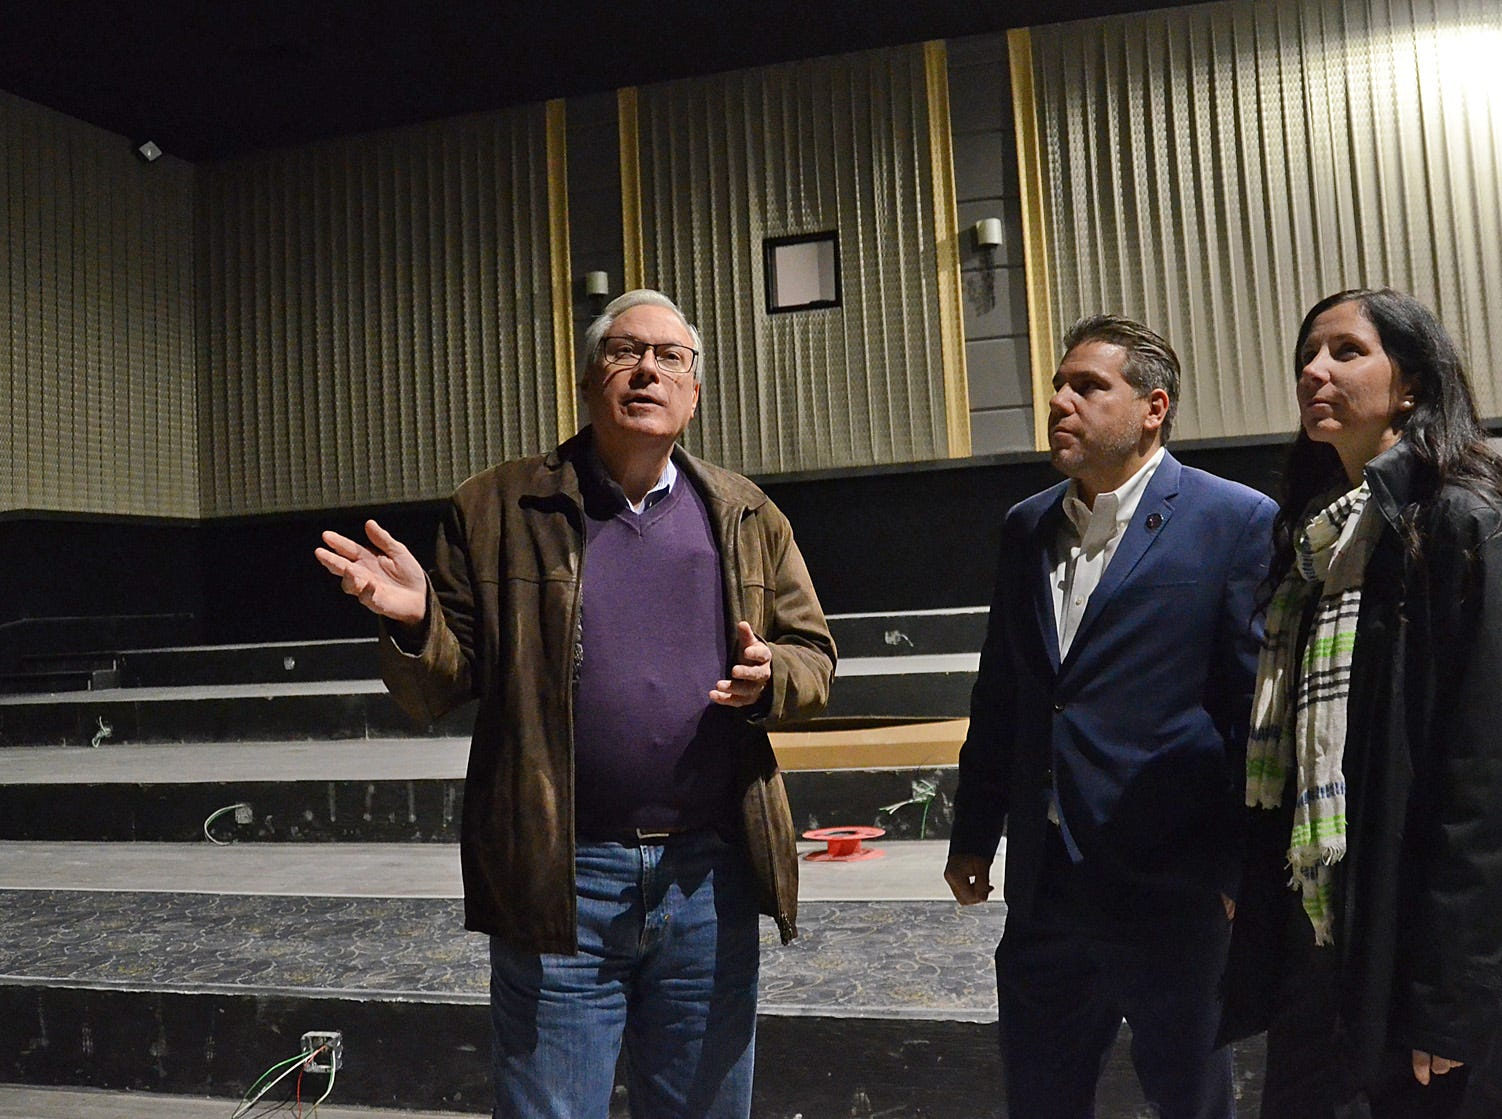 From left, Emagine Entertainment Chairman Paul Glantz, CEO Anthony LaVerde and Chief Marketing Officer Melissa Boudreau stand in a nearly completed theater at the soon-to-open Emagine Hartland movie theater, Friday, Oct. 26, 2018.